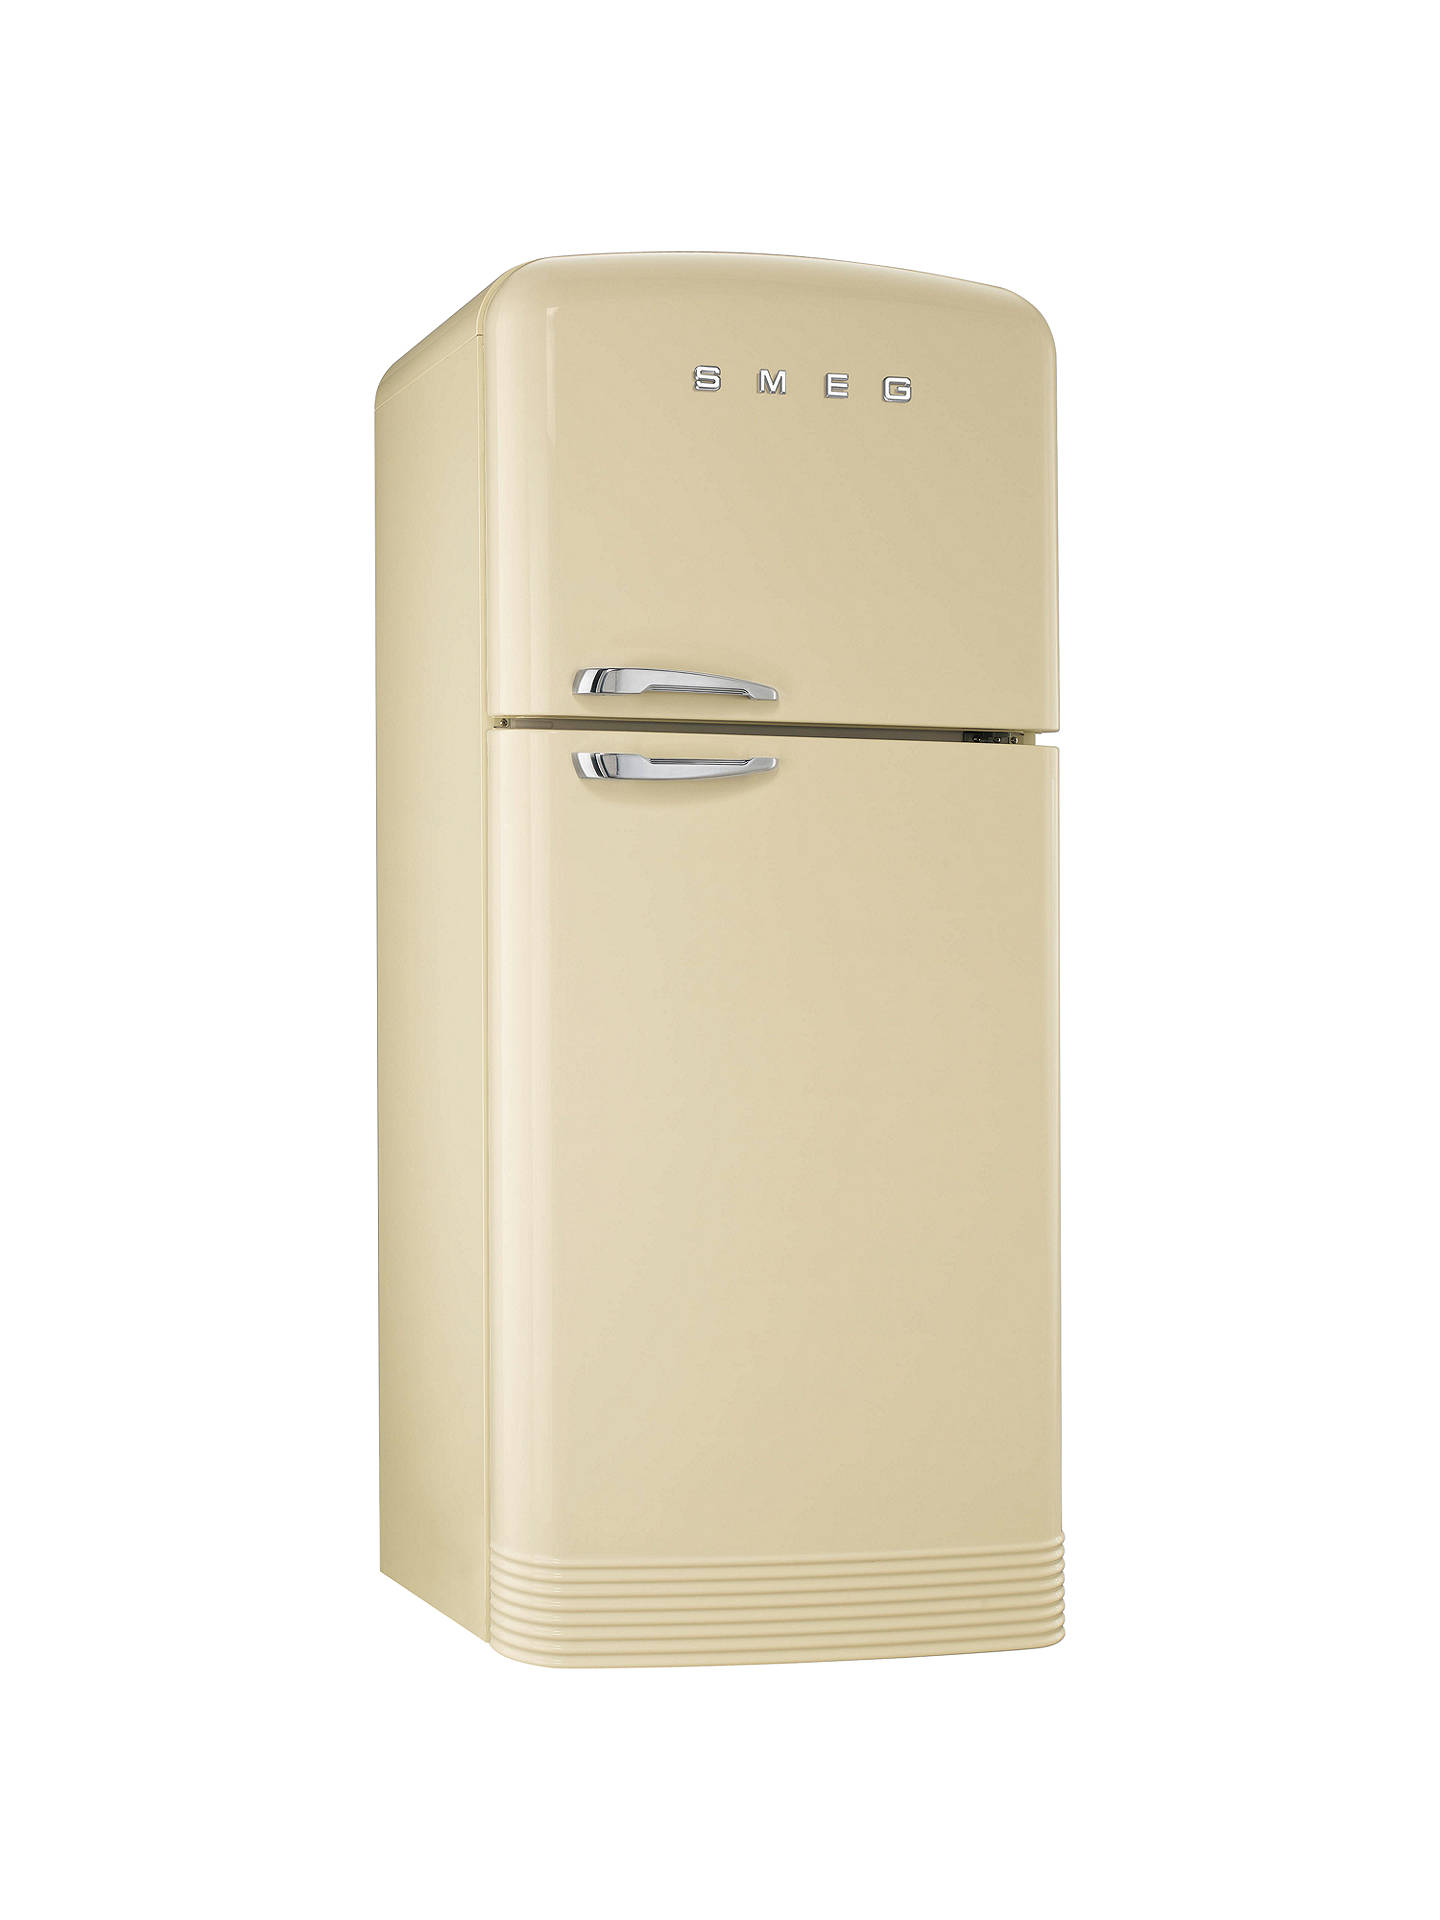 80cm Fridge Freezer >> Smeg FAB50P Fridge Freezer, A+ Energy Rating, 80cm Wide, Cream at John Lewis & Partners